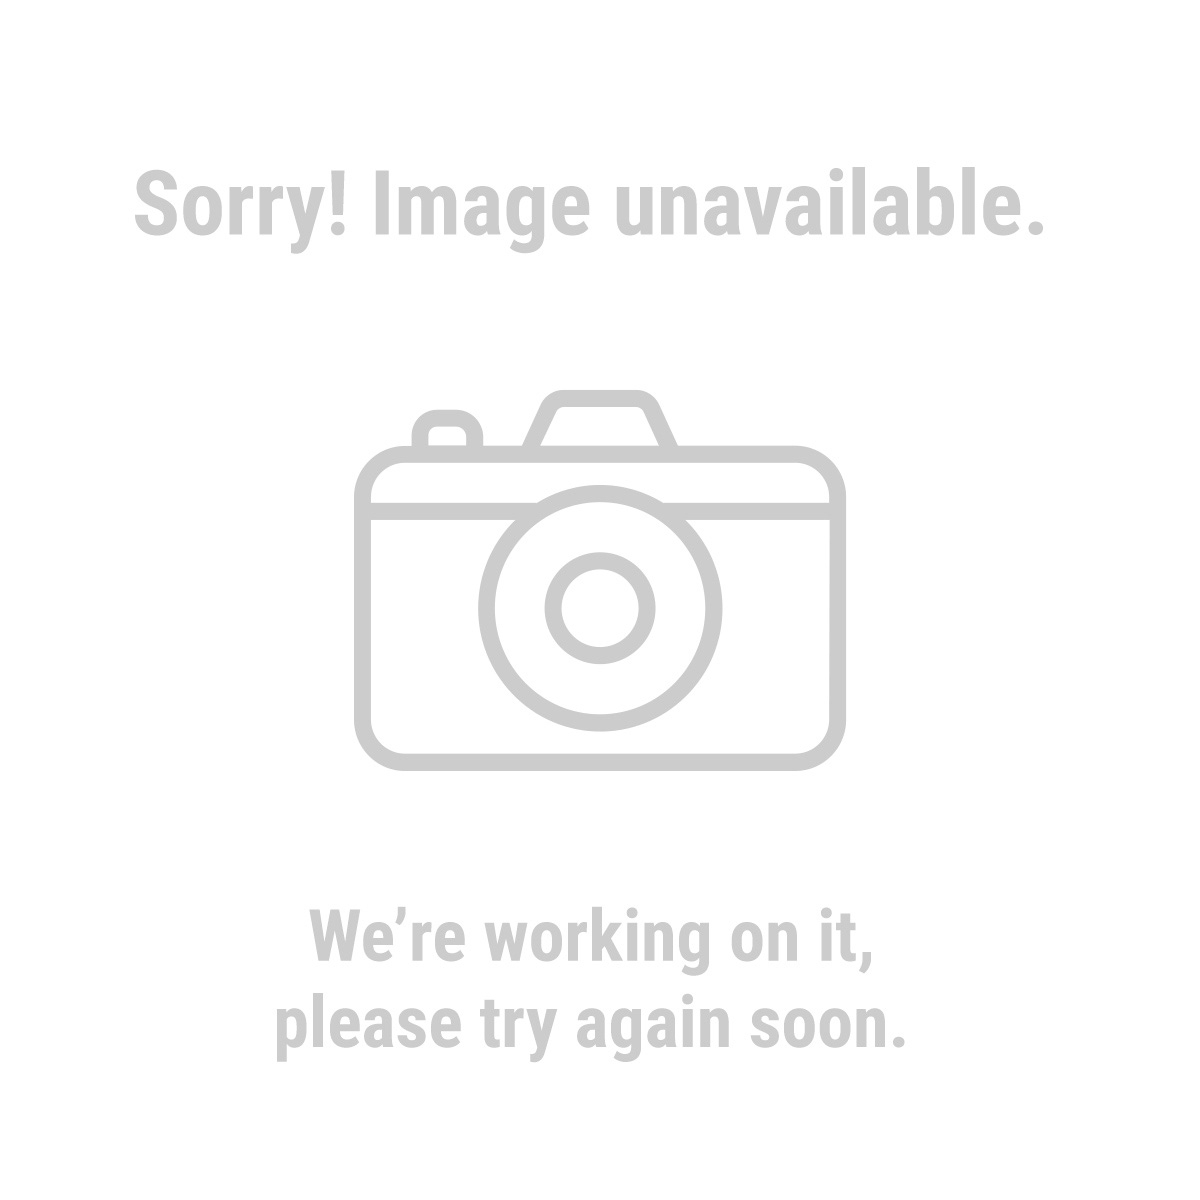 Greenwood 63092 4 gal. Backpack Sprayer